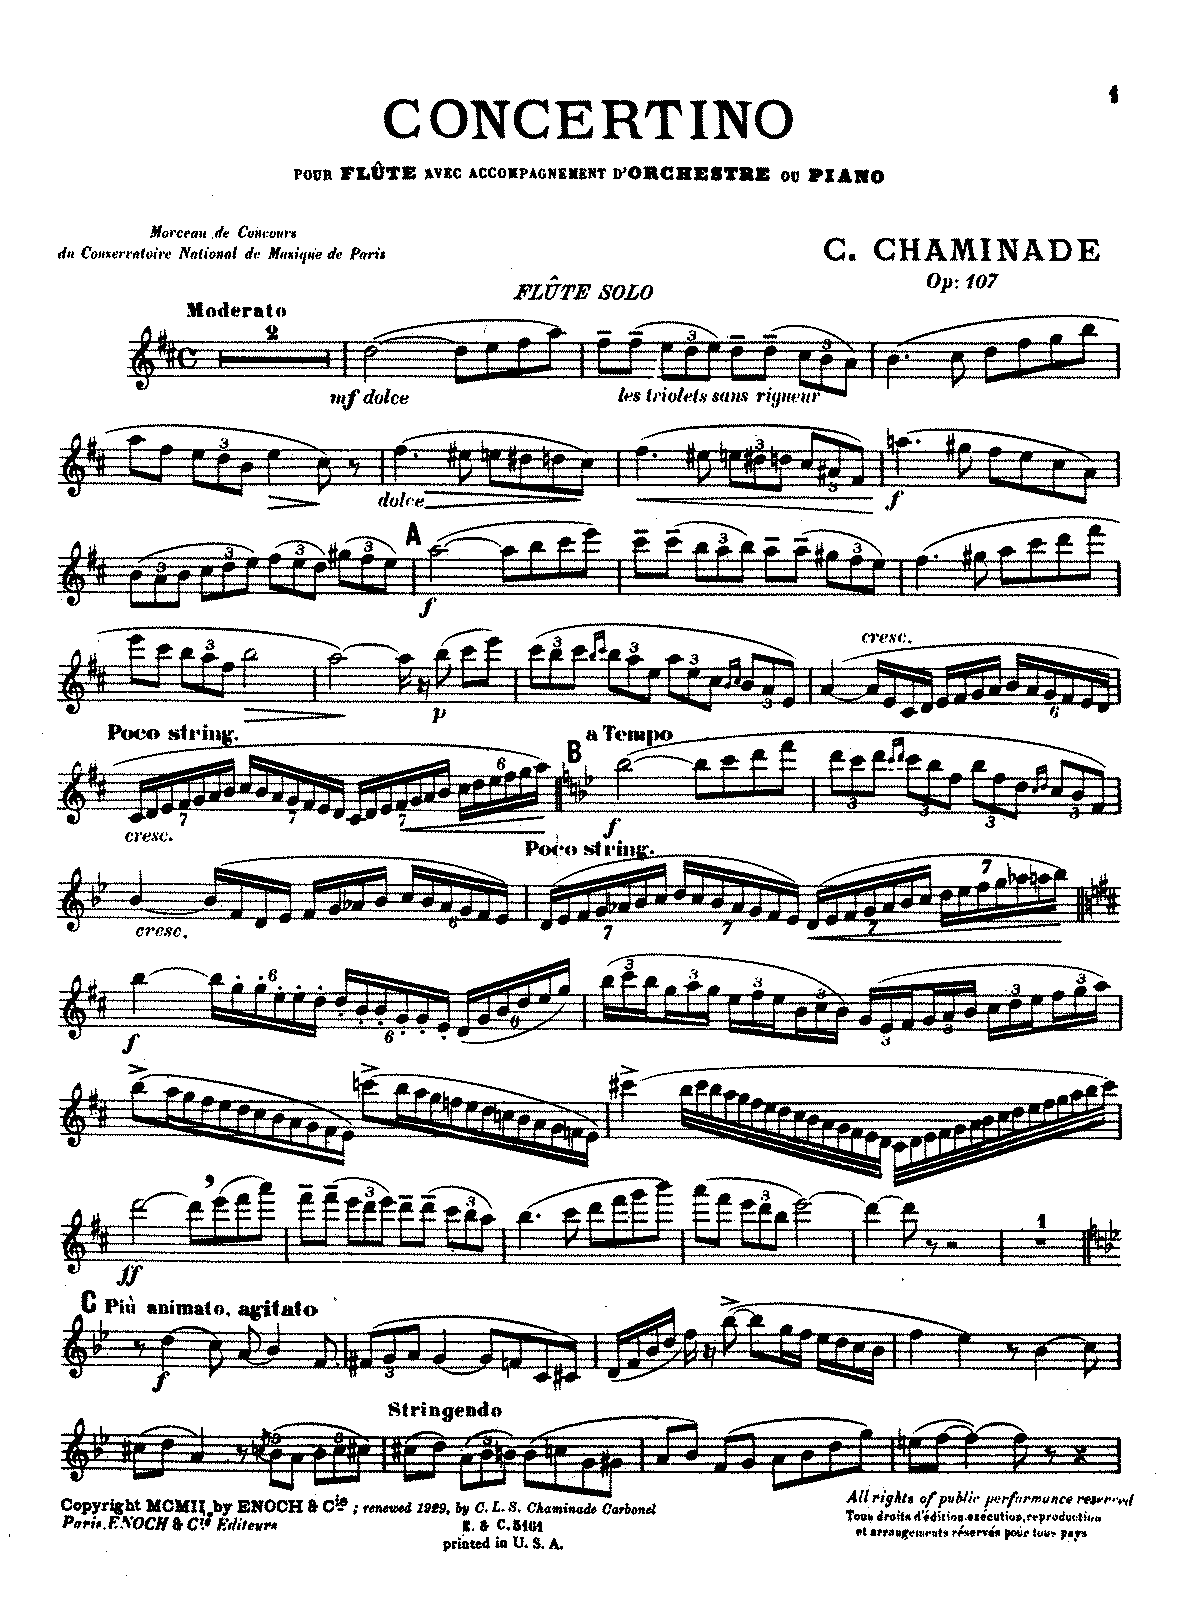 PMLP17533-Chaminade - Concertino for flute and orchestra, Op. 107 (flute and piano).pdf